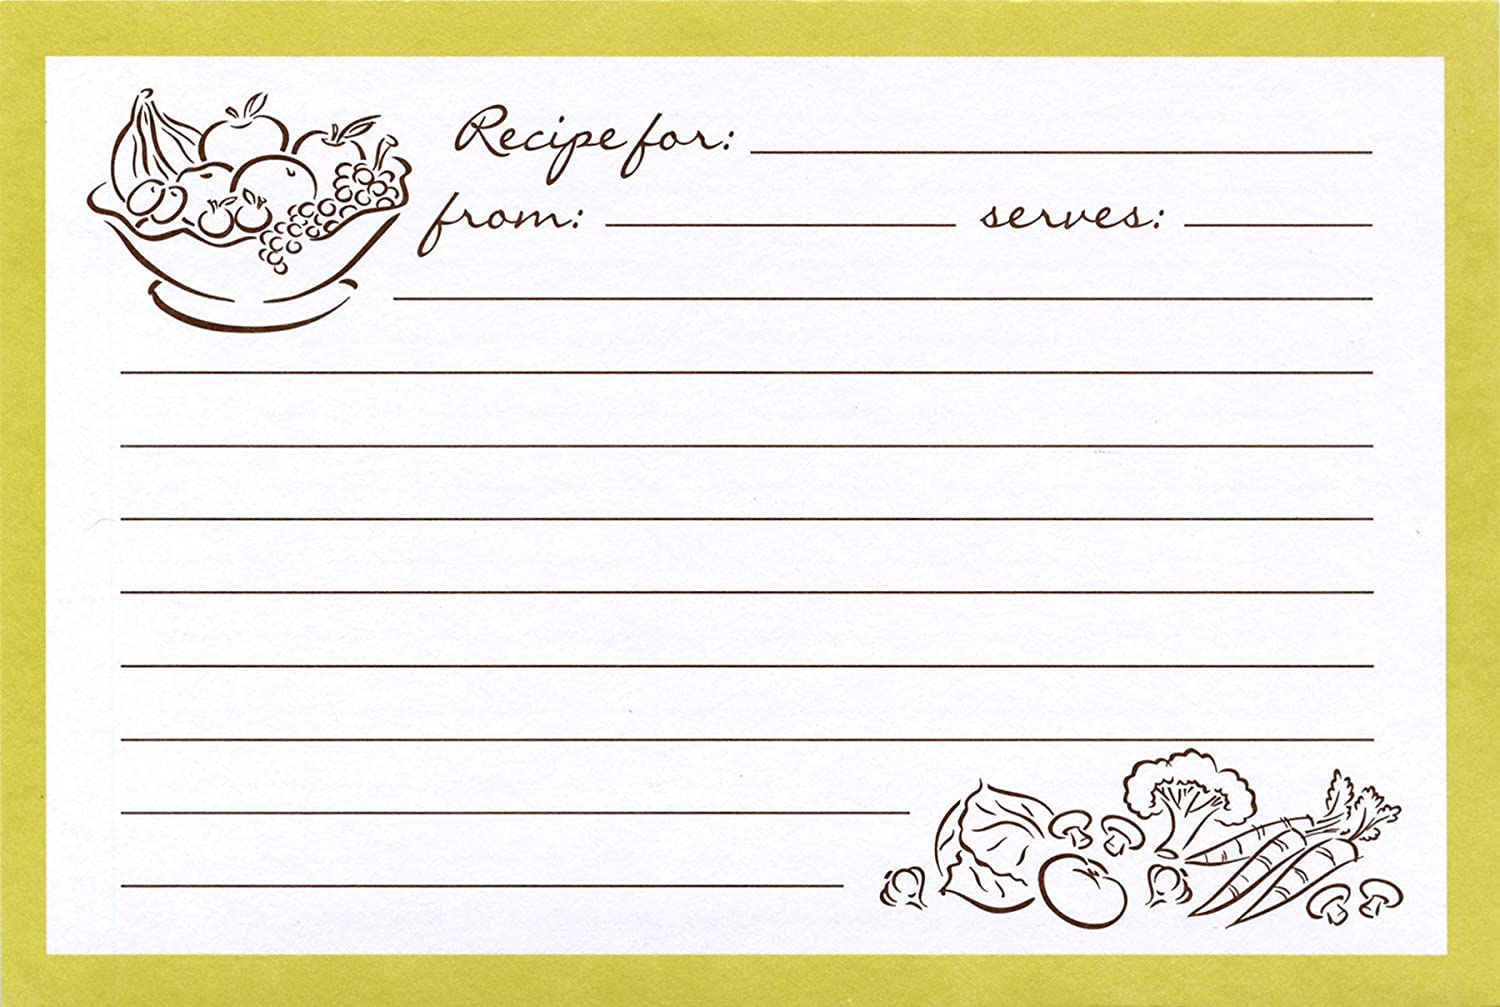 Meadowsweet Kitchens Recipe Card Set-Modern Kitchen Green RC/P 25MKG